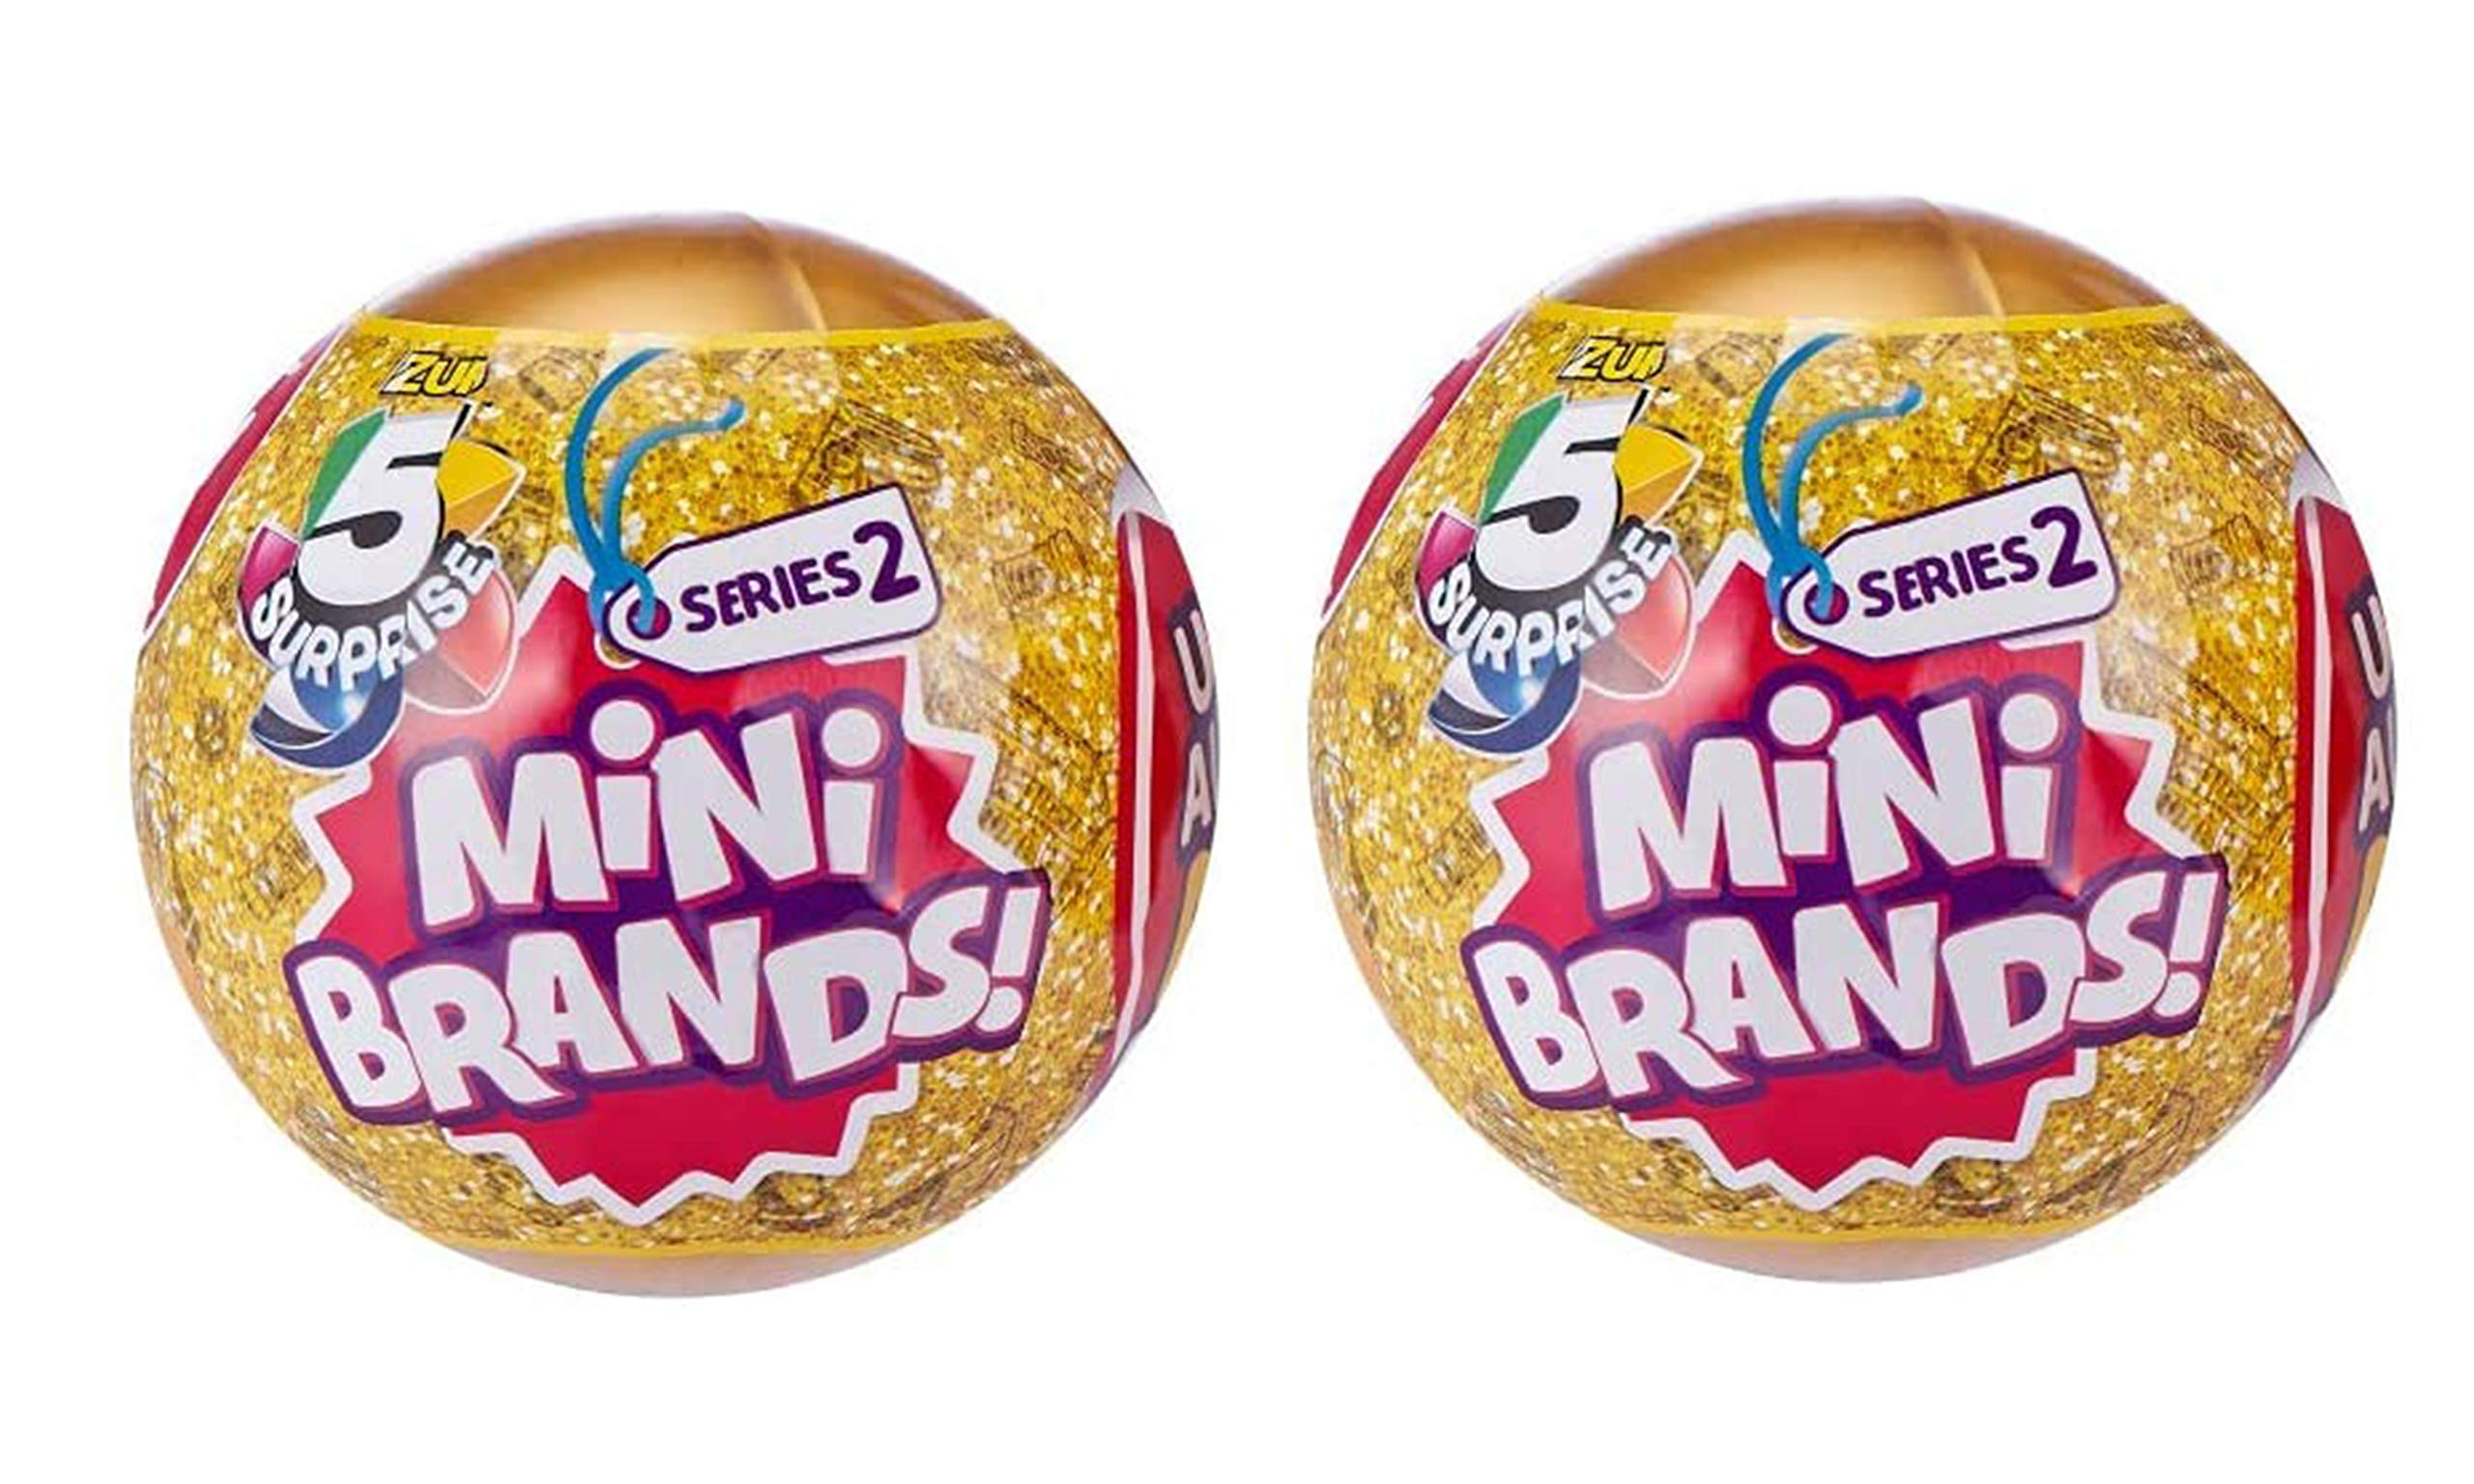 Year Round Gifts 4 You 5 Surprise Mini Brands! Series 2 (Pack 2)